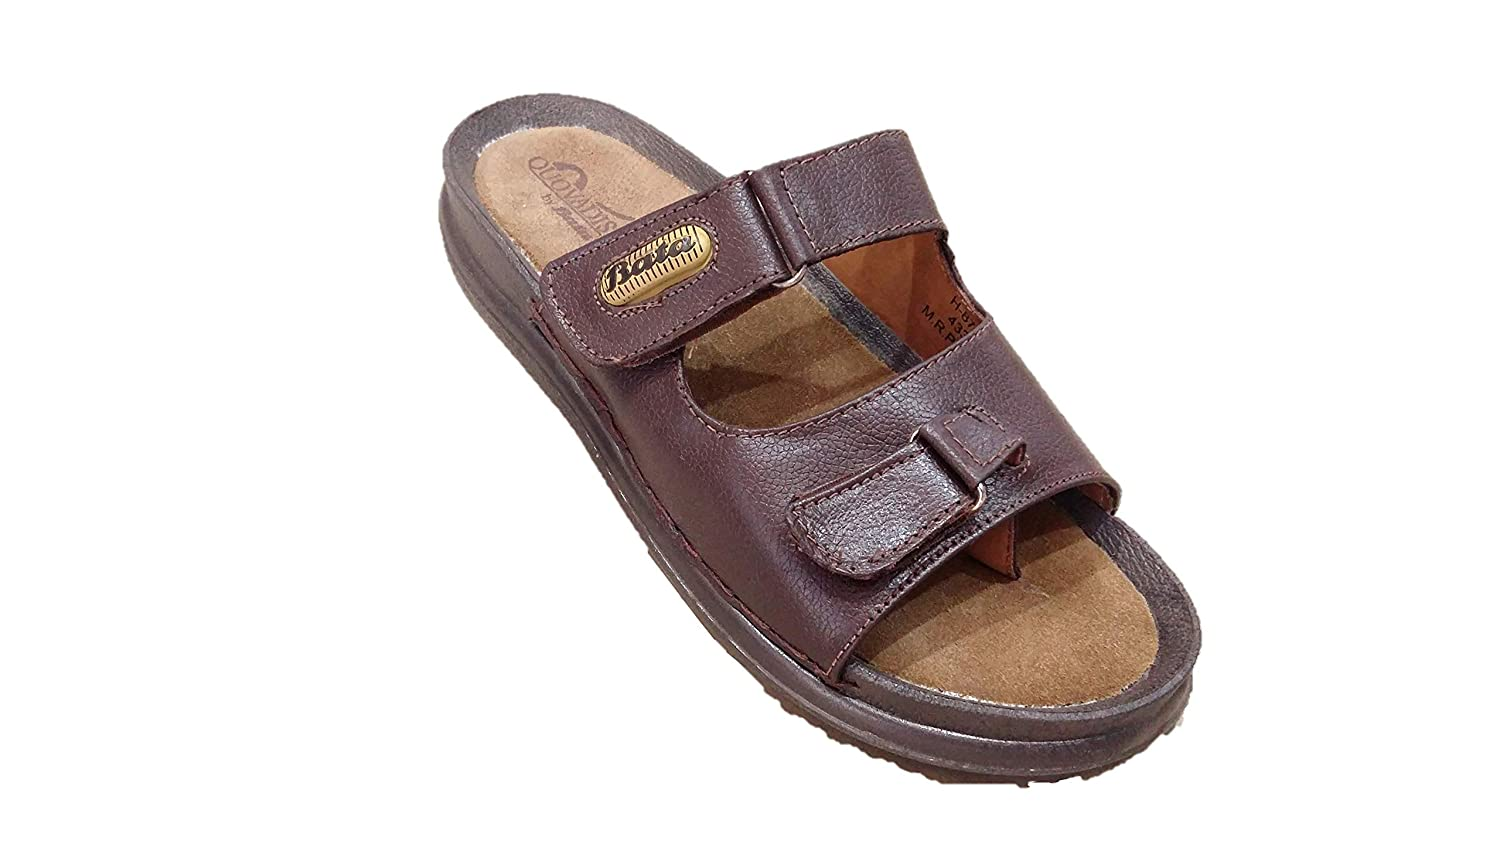 Buy BATA Brown Leather Chappal for Men